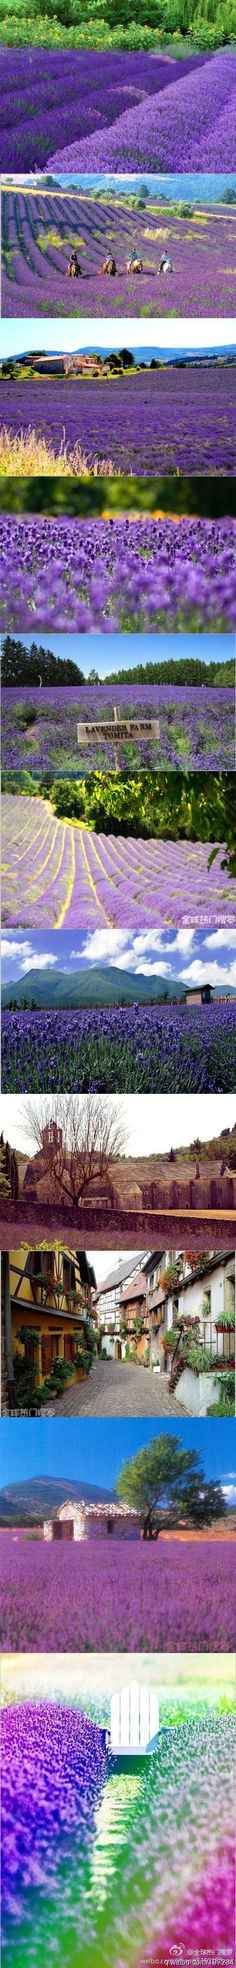 There are locations in New Zealand's South Island that are a purple haze...